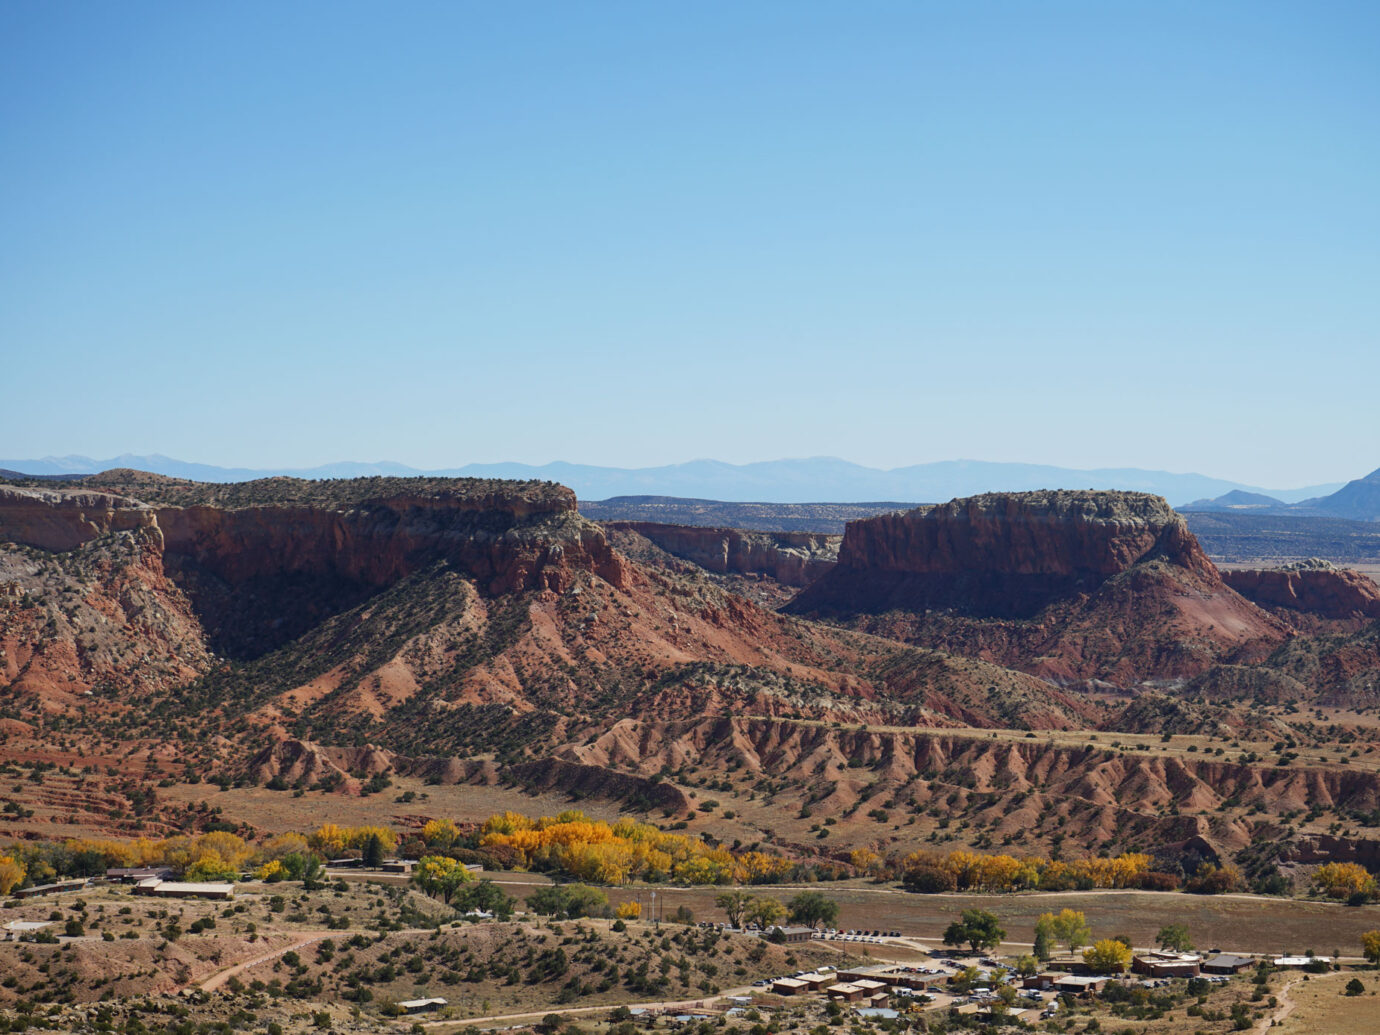 Landscape view from Ghost Ranch, Santa Fe